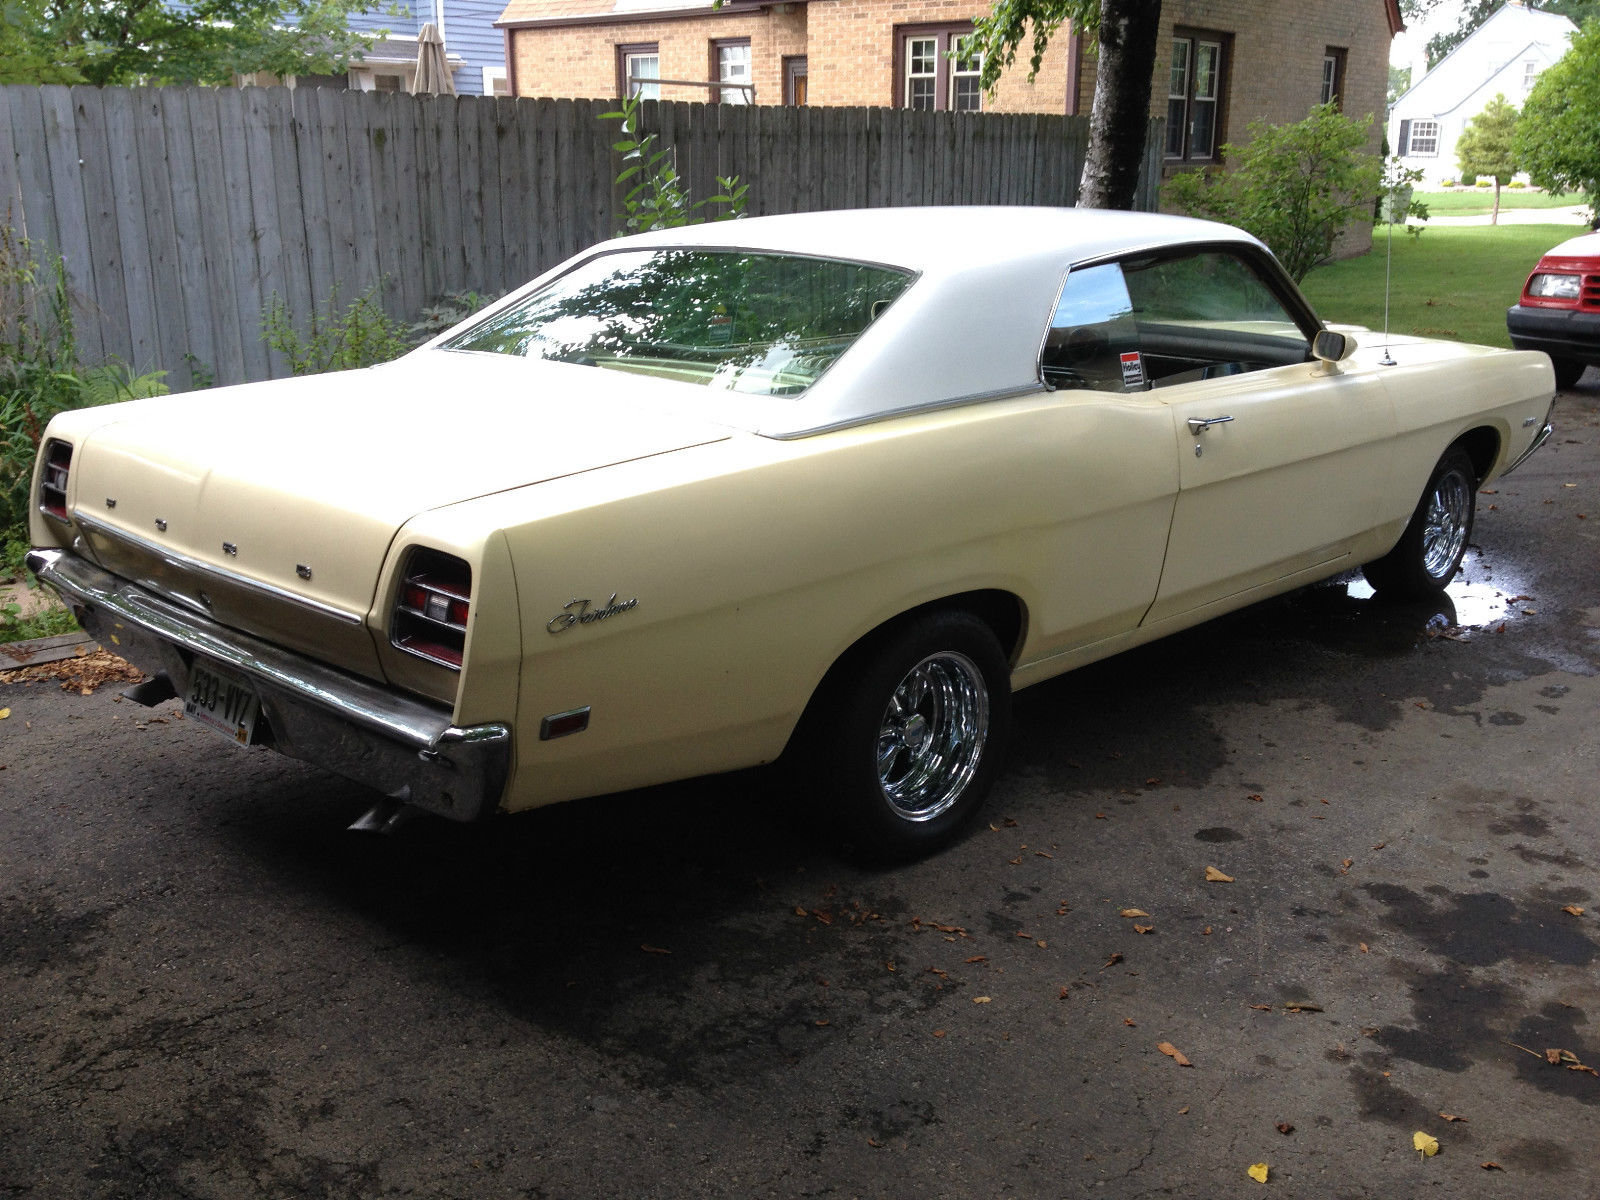 Ford Fairlane Parts Car For Sale